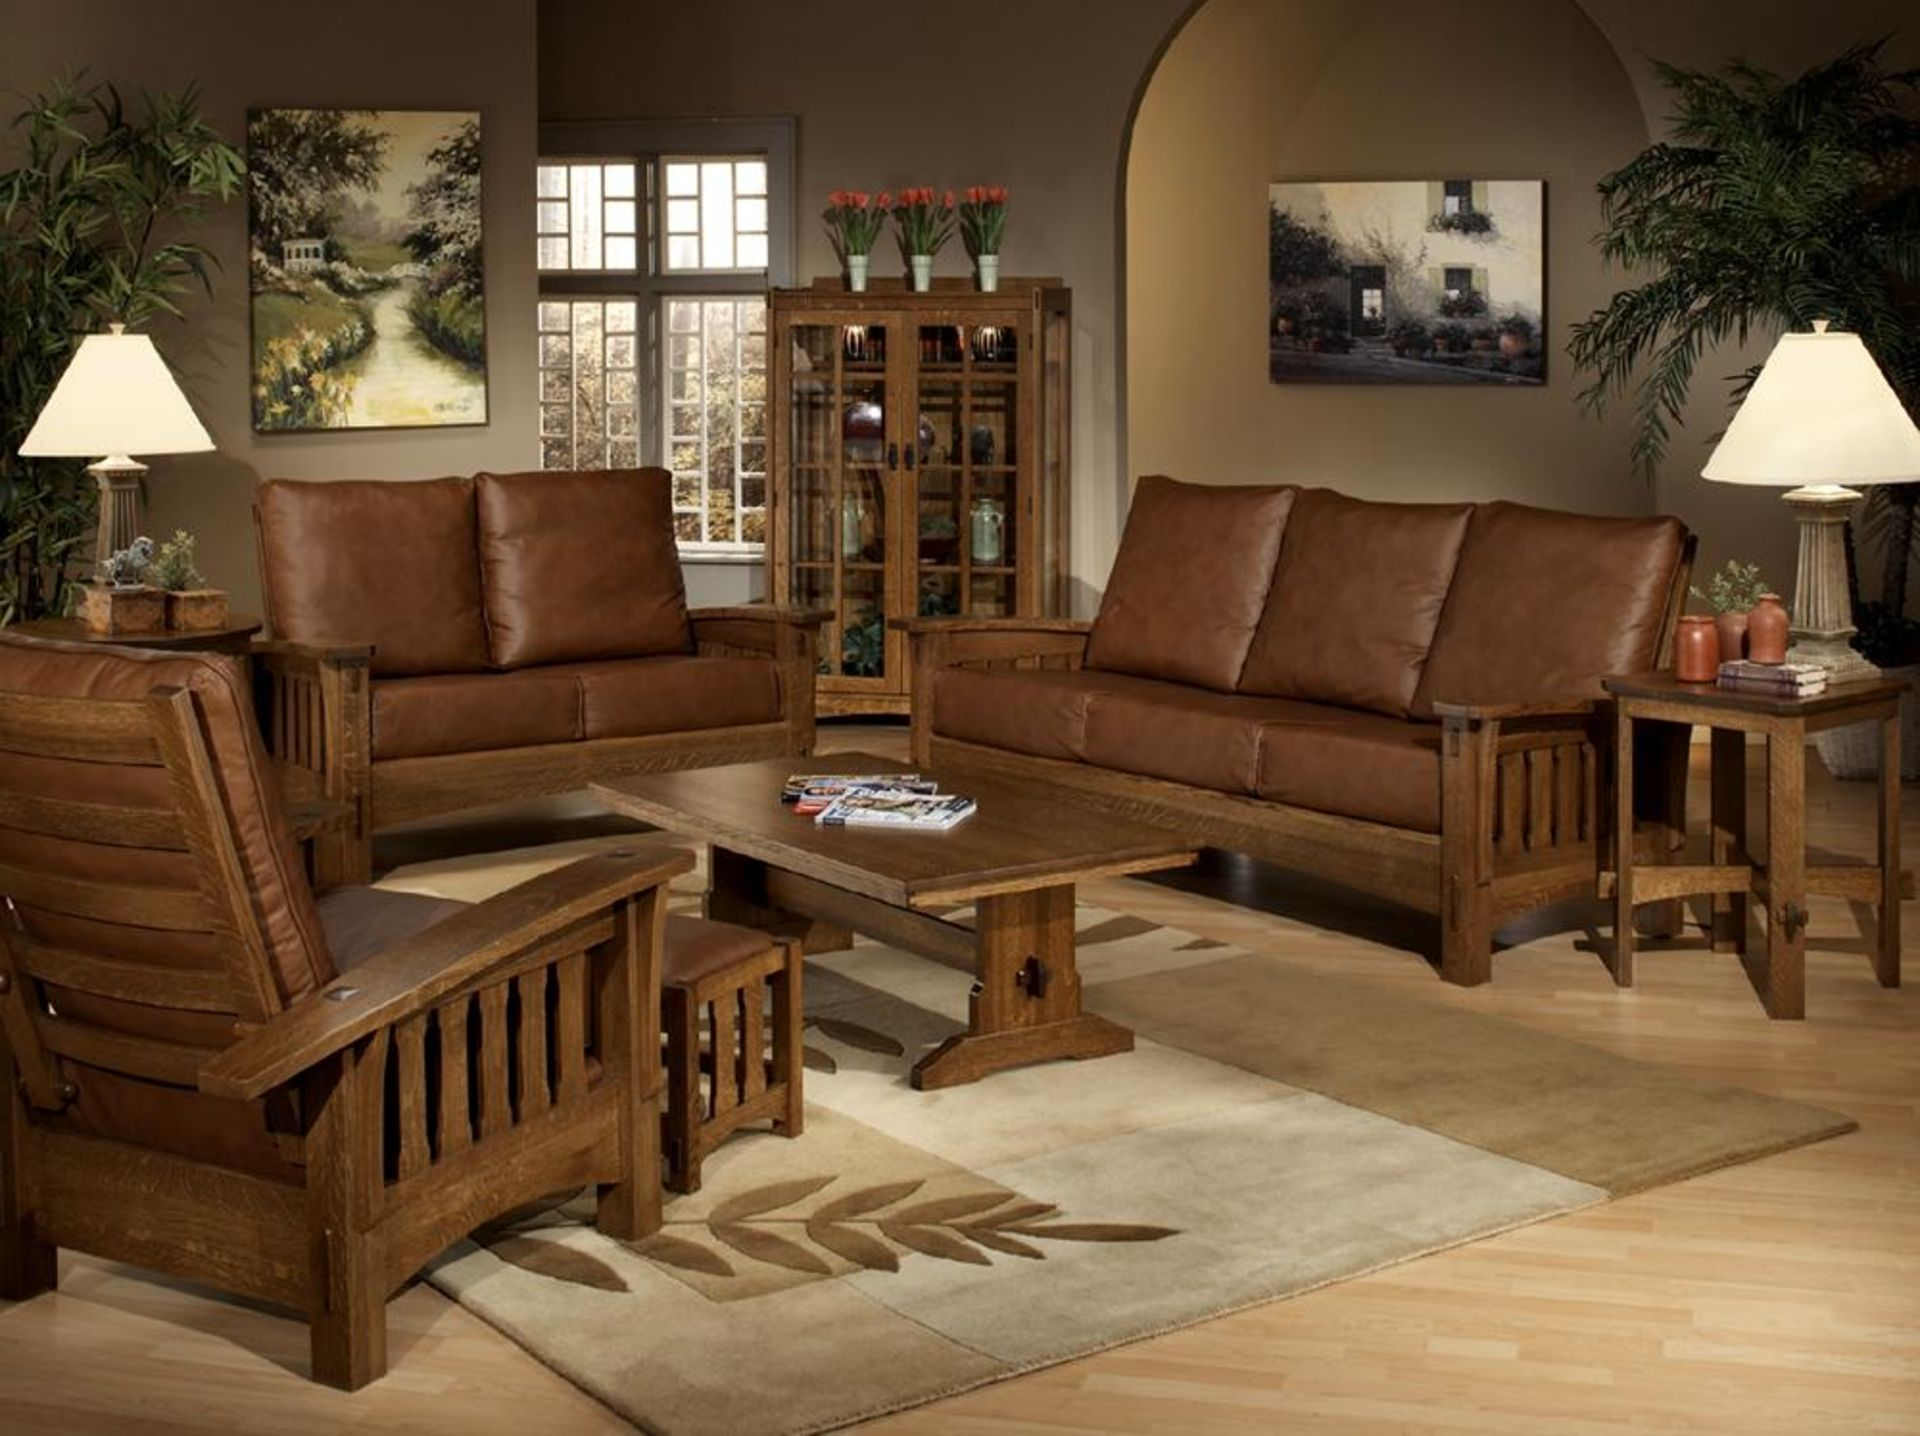 Charmant With The Obligation Pieces Of Living Room Furniture Wood, You Can Give New  Meaning To The Feel Of Any Space. These Modern Bits Of Living Room  Furniture Wood ...